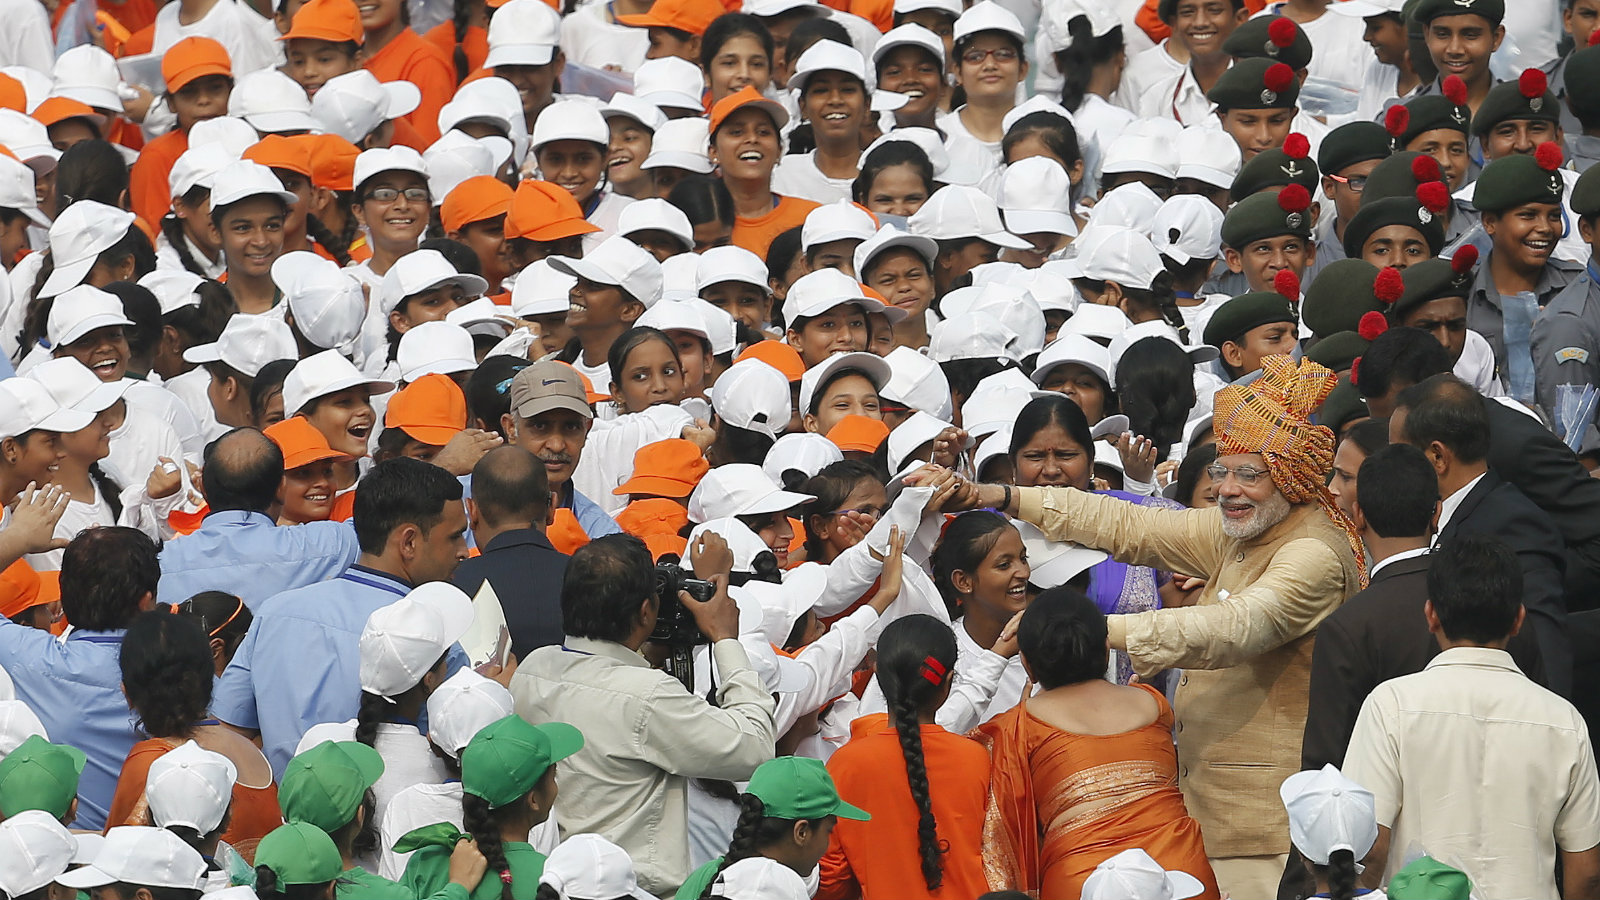 Indian Prime Minister Narendra Modi (R, wearing turban) greets school children after addressing the nation from the historic Red Fort during Independence Day celebrations in Delhi, India, August 15, 2015. Modi sought to shed an image that he governs for big business on Saturday, vowing to help the poor in an annual speech aimed at bolstering popularity rather than tackling setbacks to his economic reform plans.